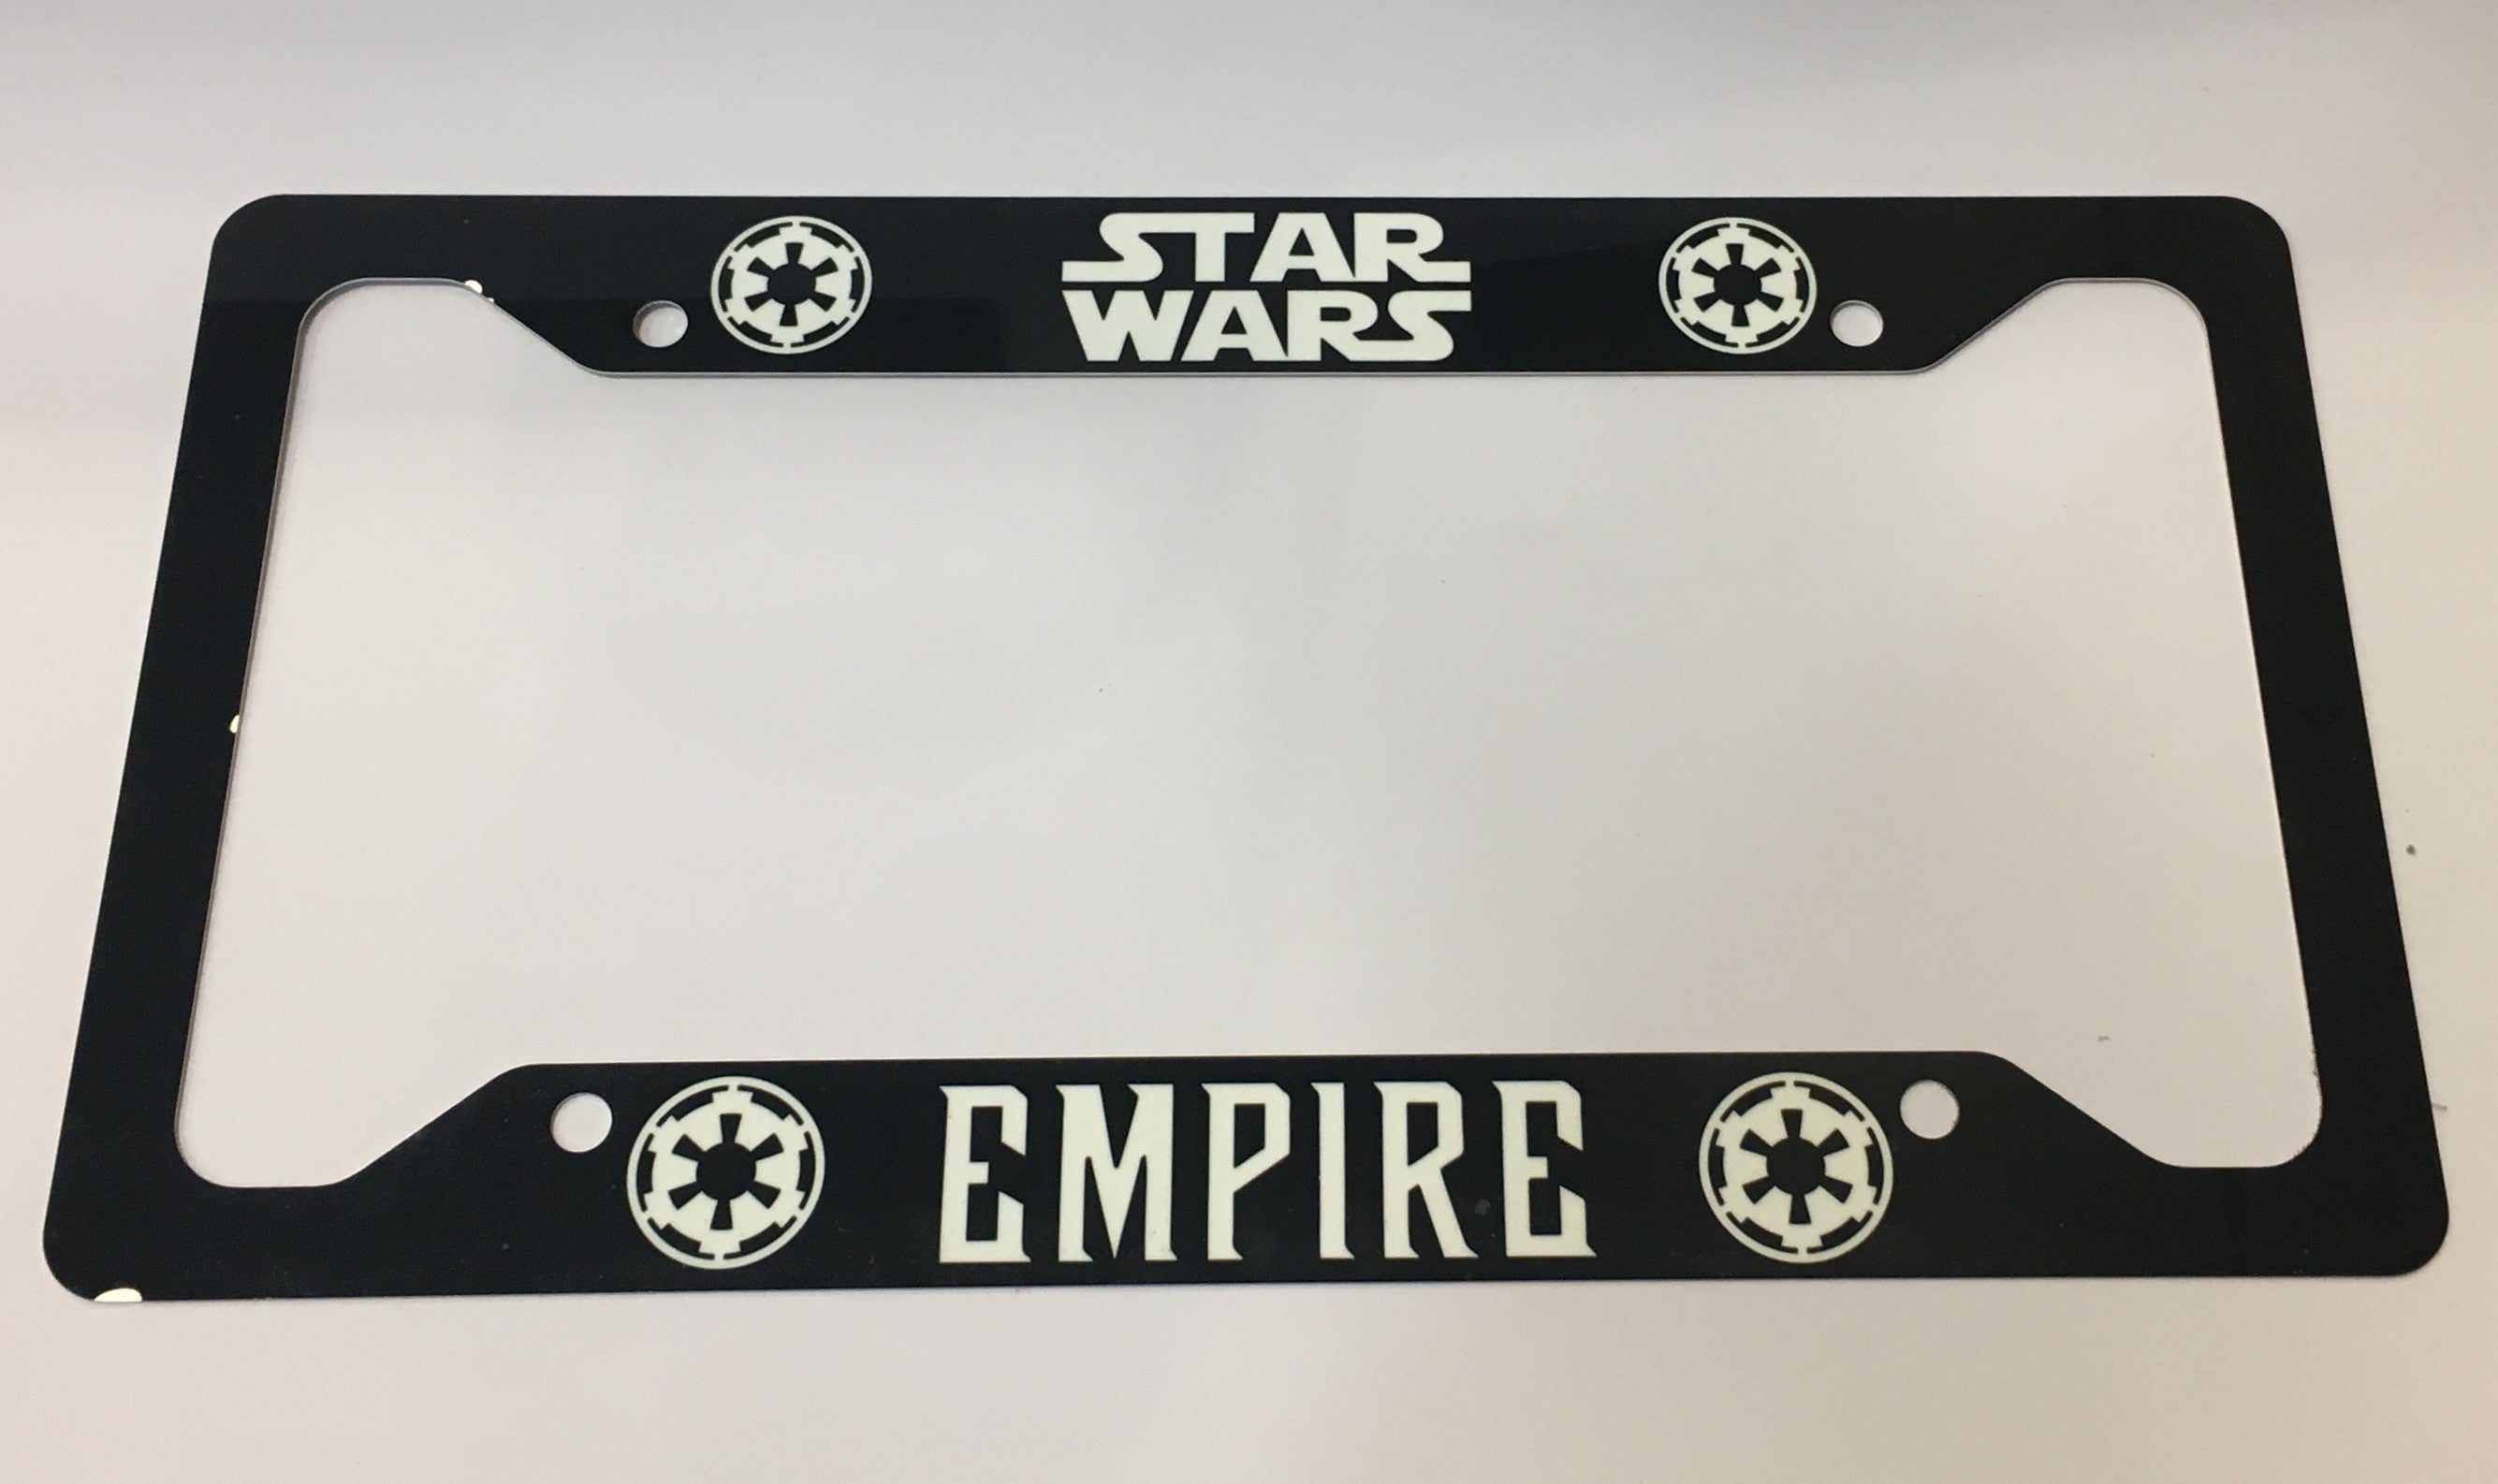 Star Wars Empire License Plate Frame